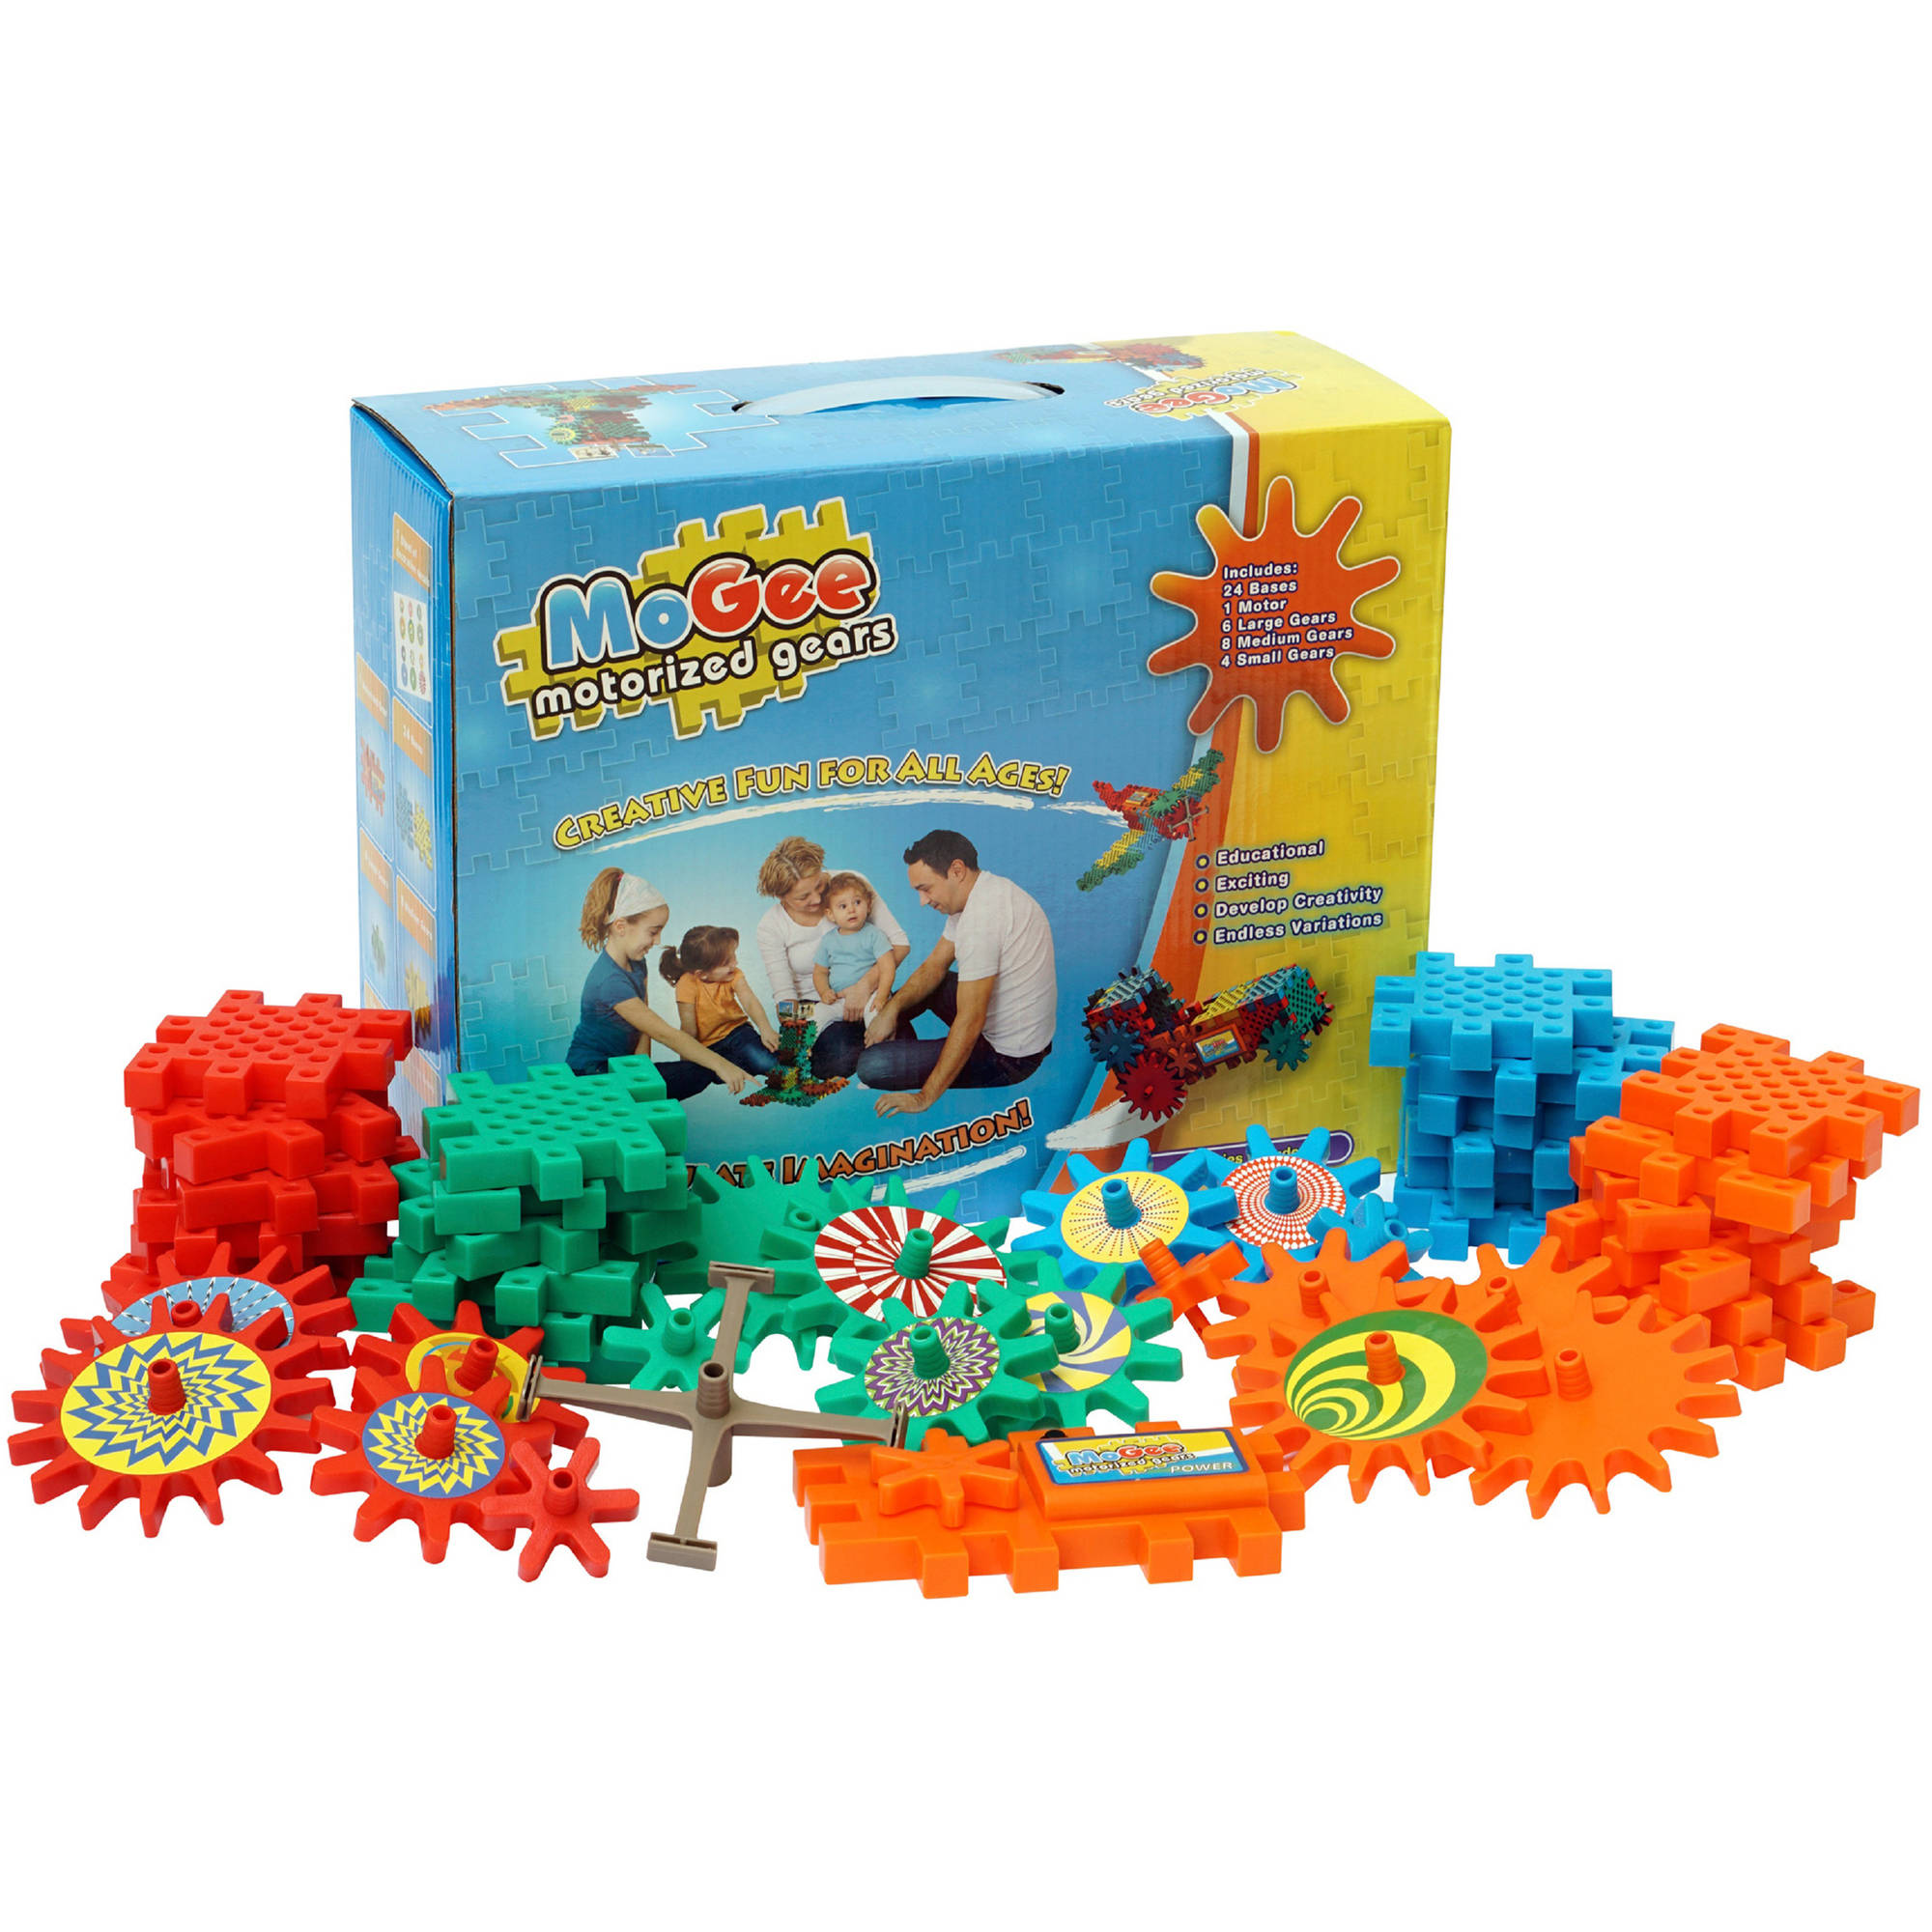 MoGee Motorized Gears Beginner Building Set Walmart